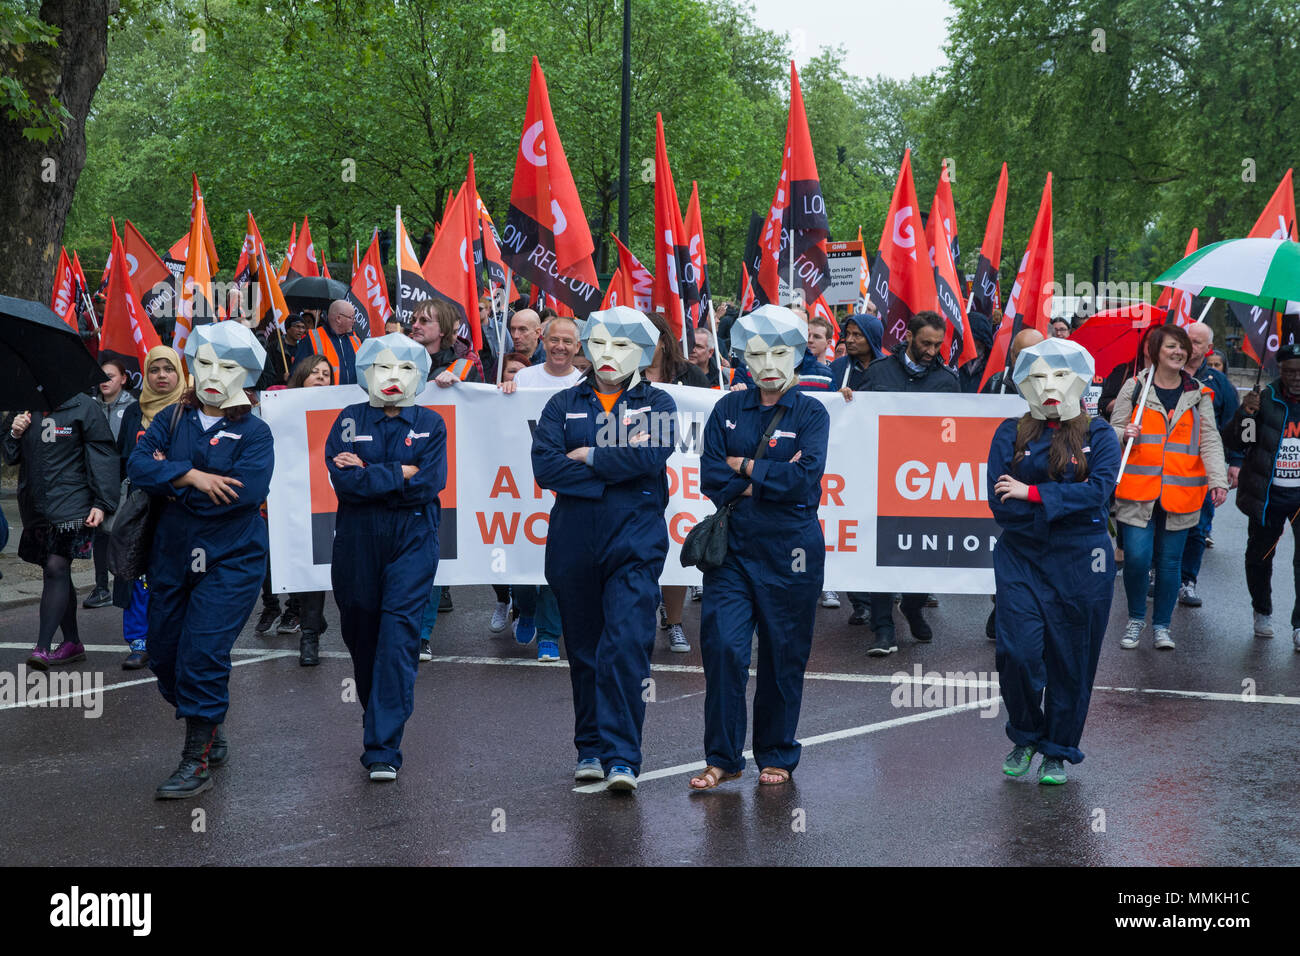 london-uk-12th-may-2018-tuc-march-and-rally-thousands-march-through-london-to-demand-a-new-deal-for-working-people-in-this-demonstration-organised-by-the-trades-union-congress-marchers-formed-up-at-victoria-embankment-and-marched-to-their-rally-in-hyde-park-credit-stephen-bellalamy-live-news-MMKH1C.jpg